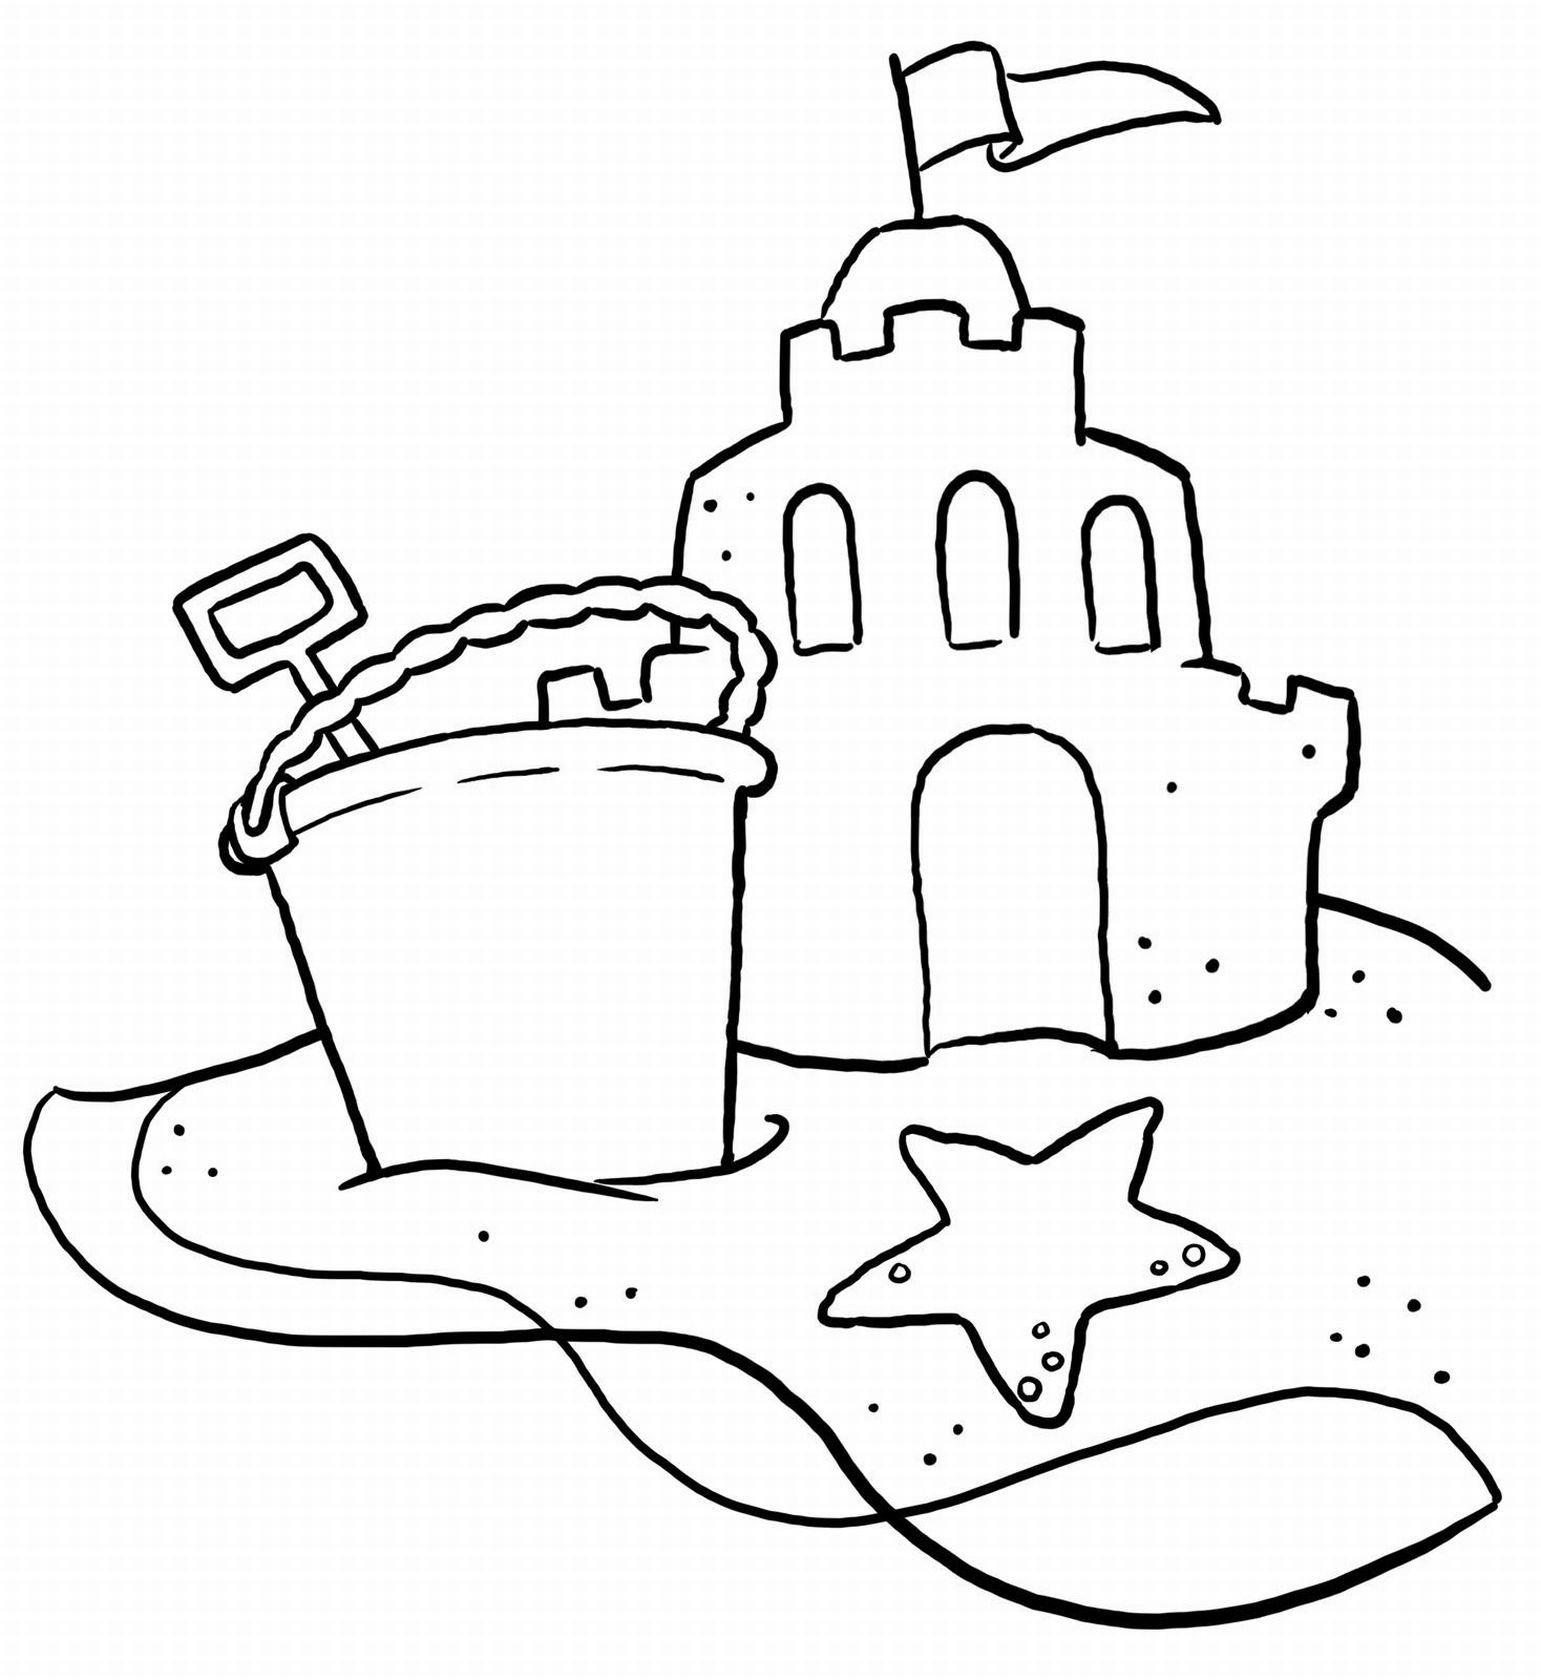 Beach clipart outline. Coloring pages free printable